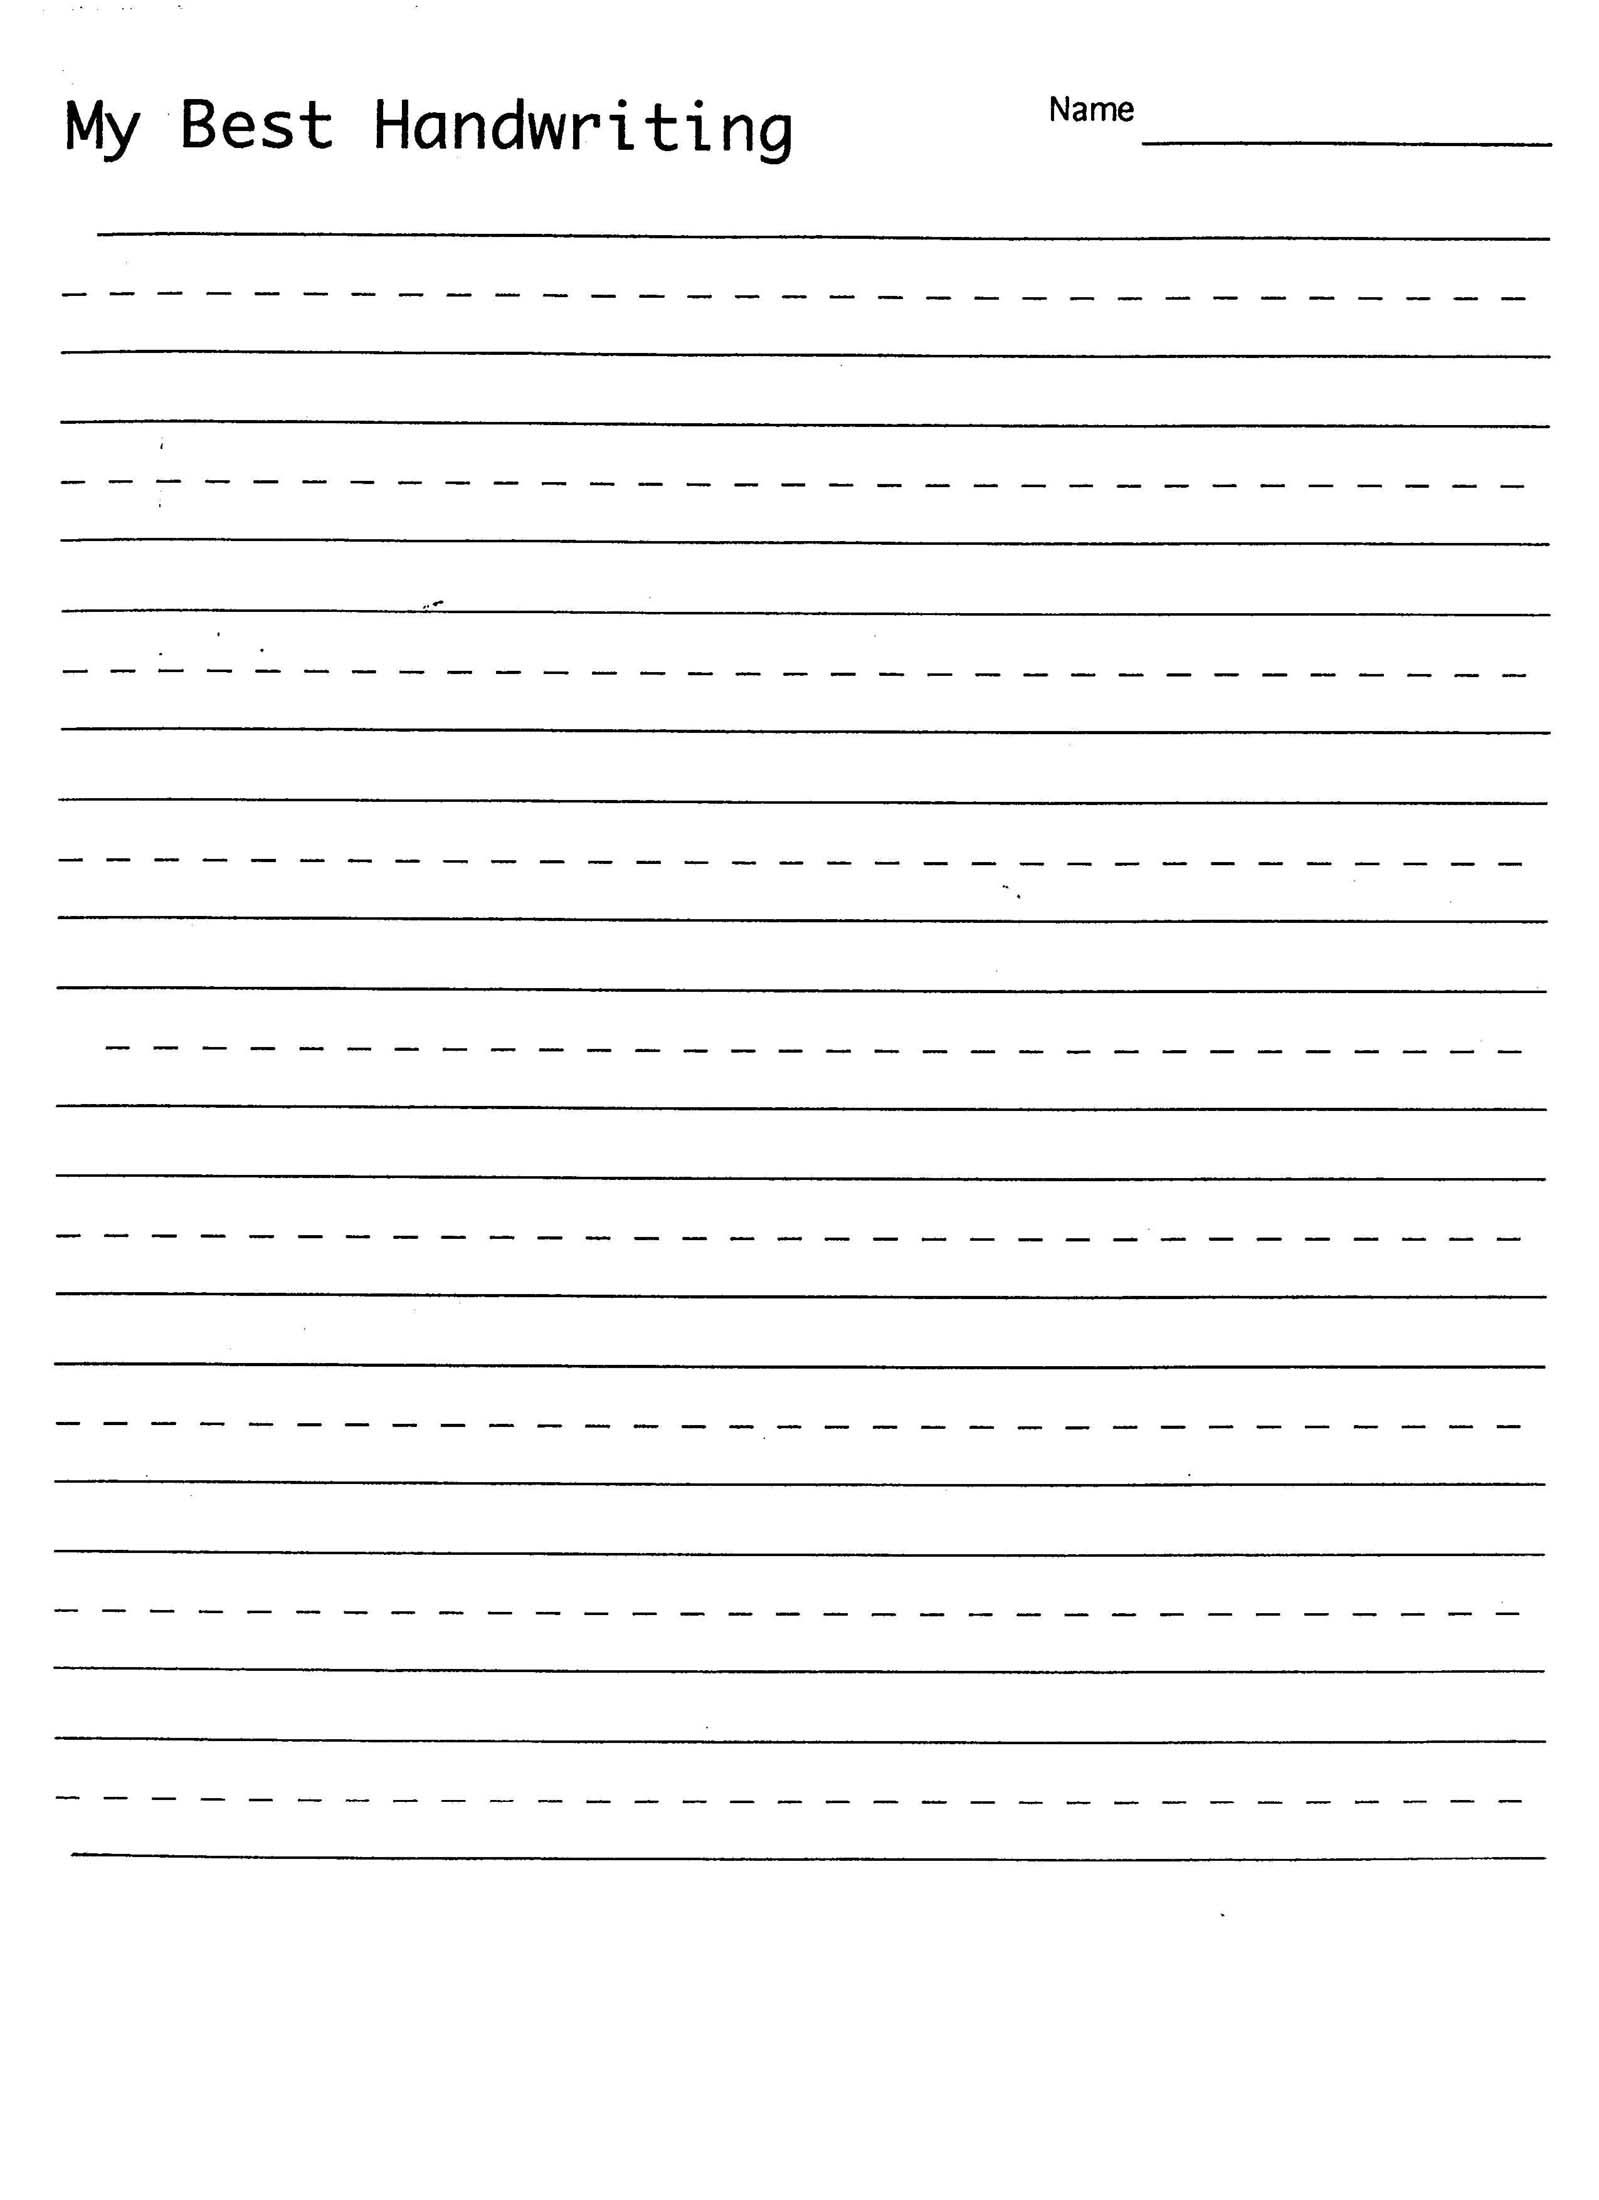 Worksheets Penmanship Practice Sheets handwriting practice sheet child education pinterest sheet